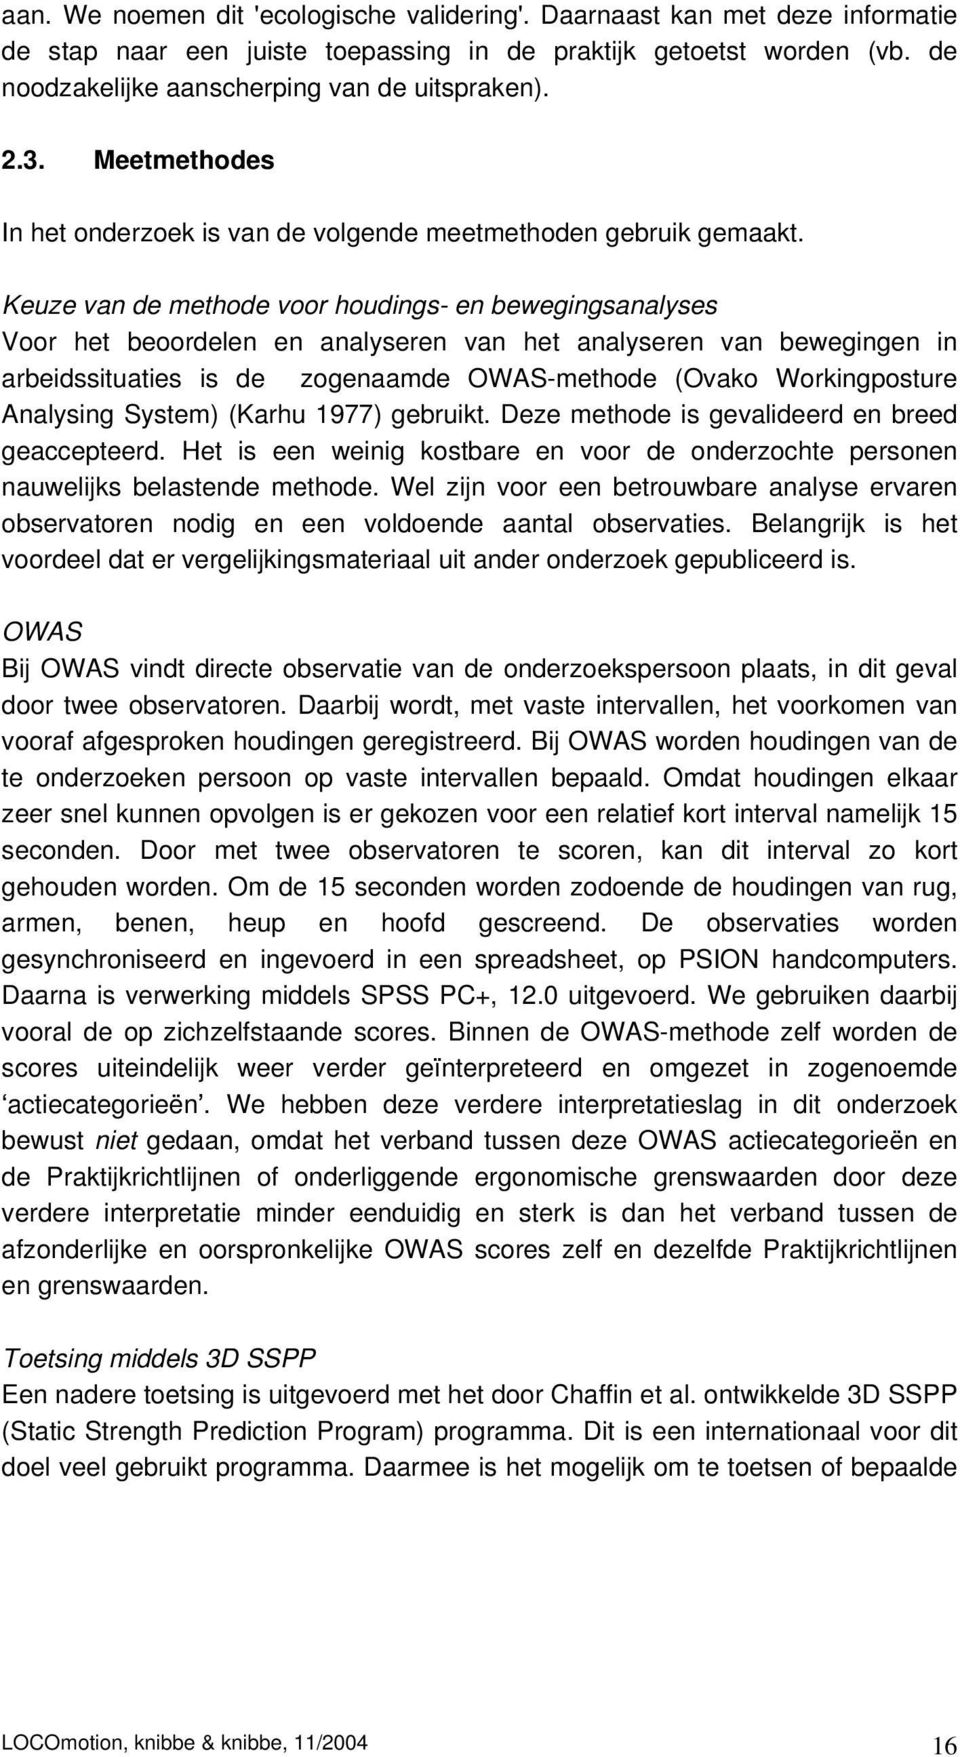 Keuze van de methode voor houdings- en bewegingsanalyses Voor het beoordelen en analyseren van het analyseren van bewegingen in arbeidssituaties is de zogenaamde OWAS-methode (Ovako Workingposture